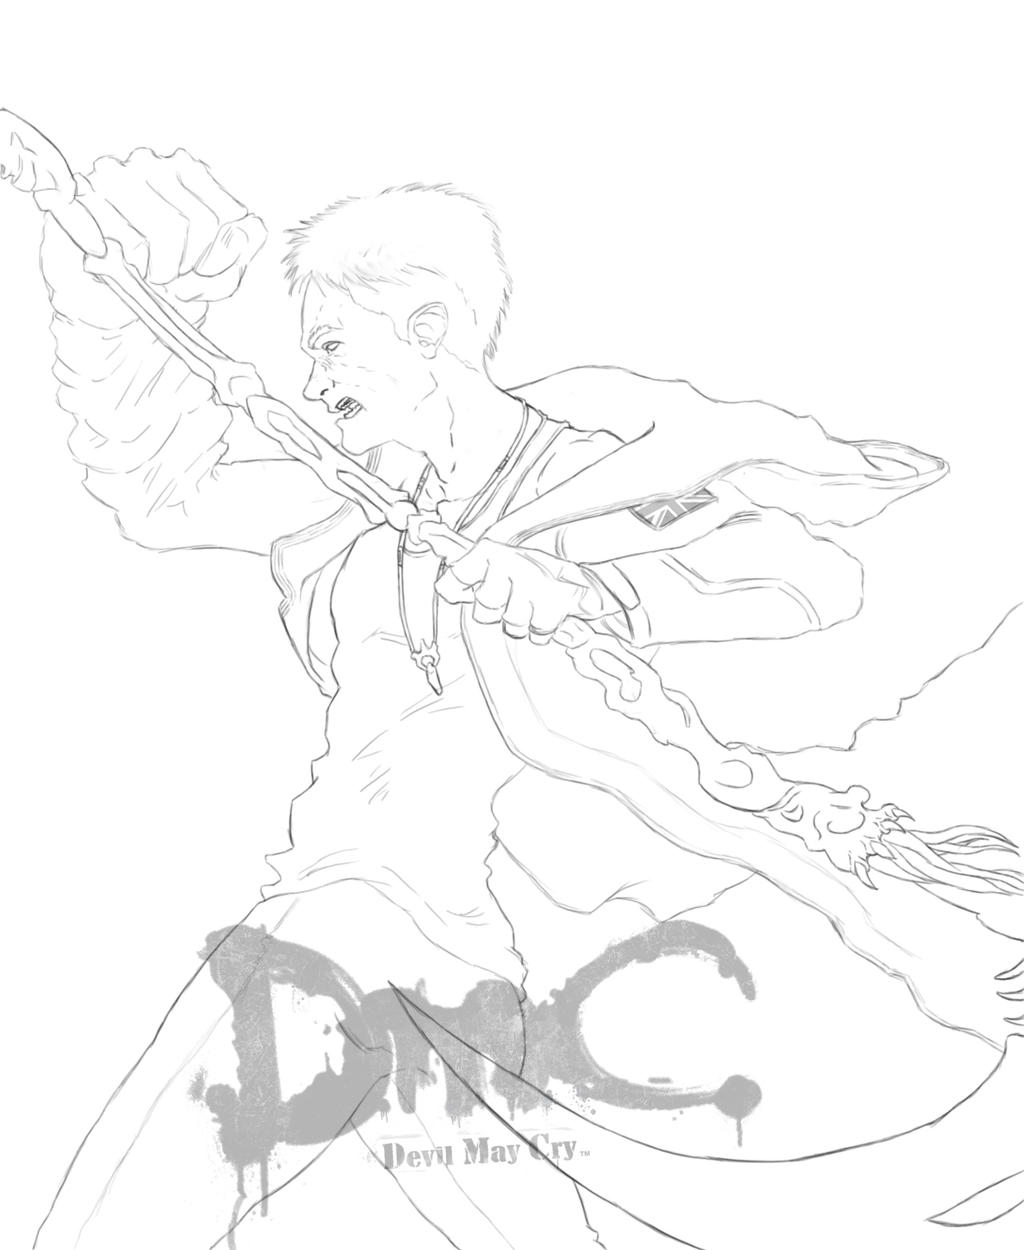 devil may cry coloring pages - photo#3